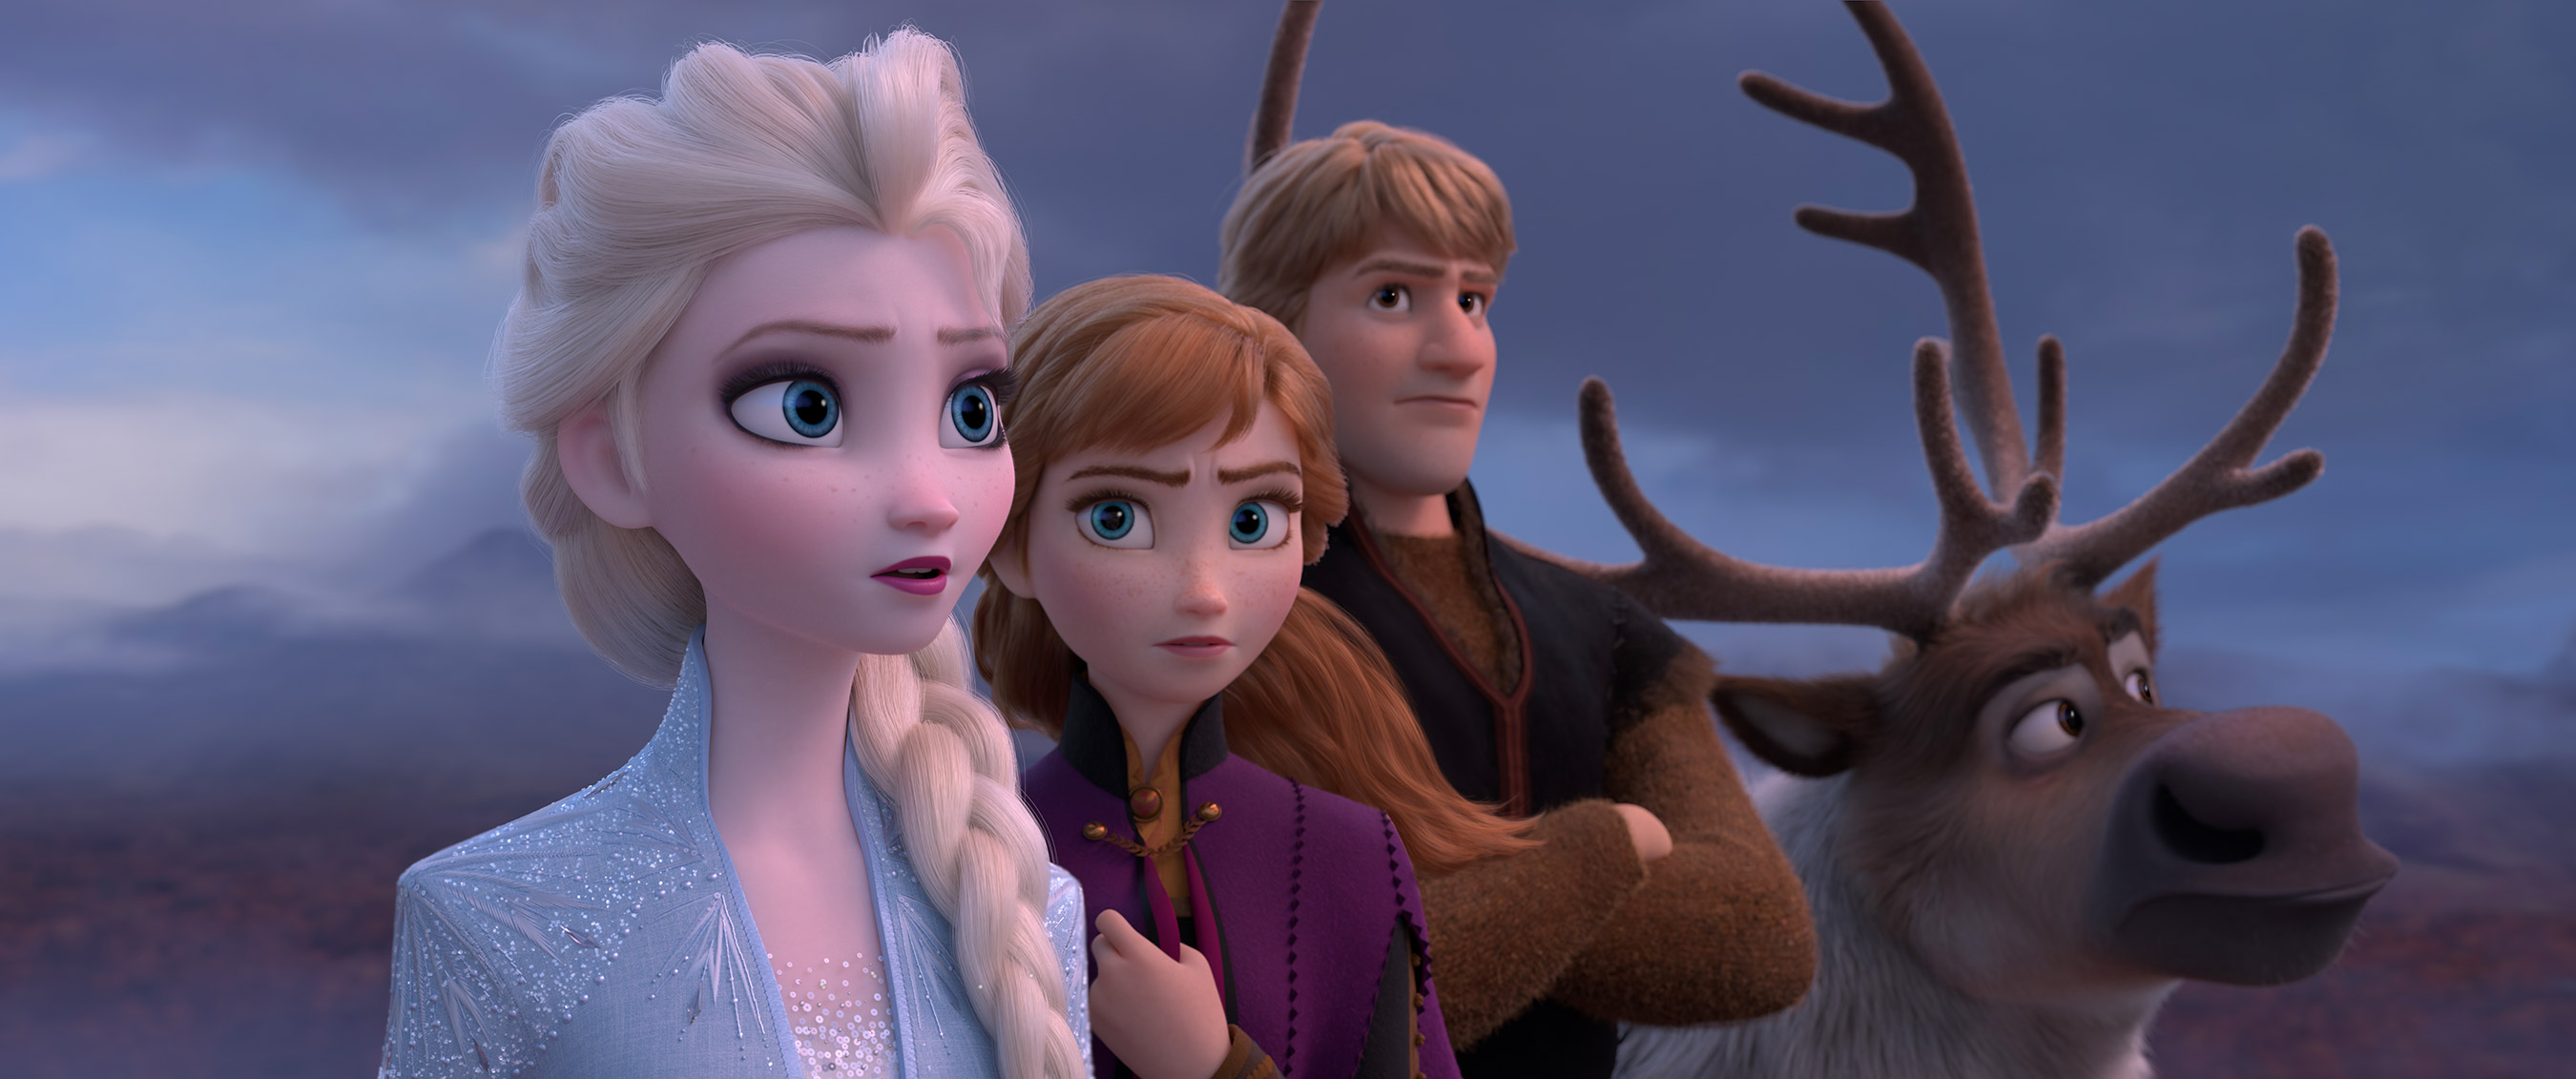 Anna and Elsa Face 'Mortal Danger' on Epic Adventure in the New Full-Length Trailer for Frozen 2